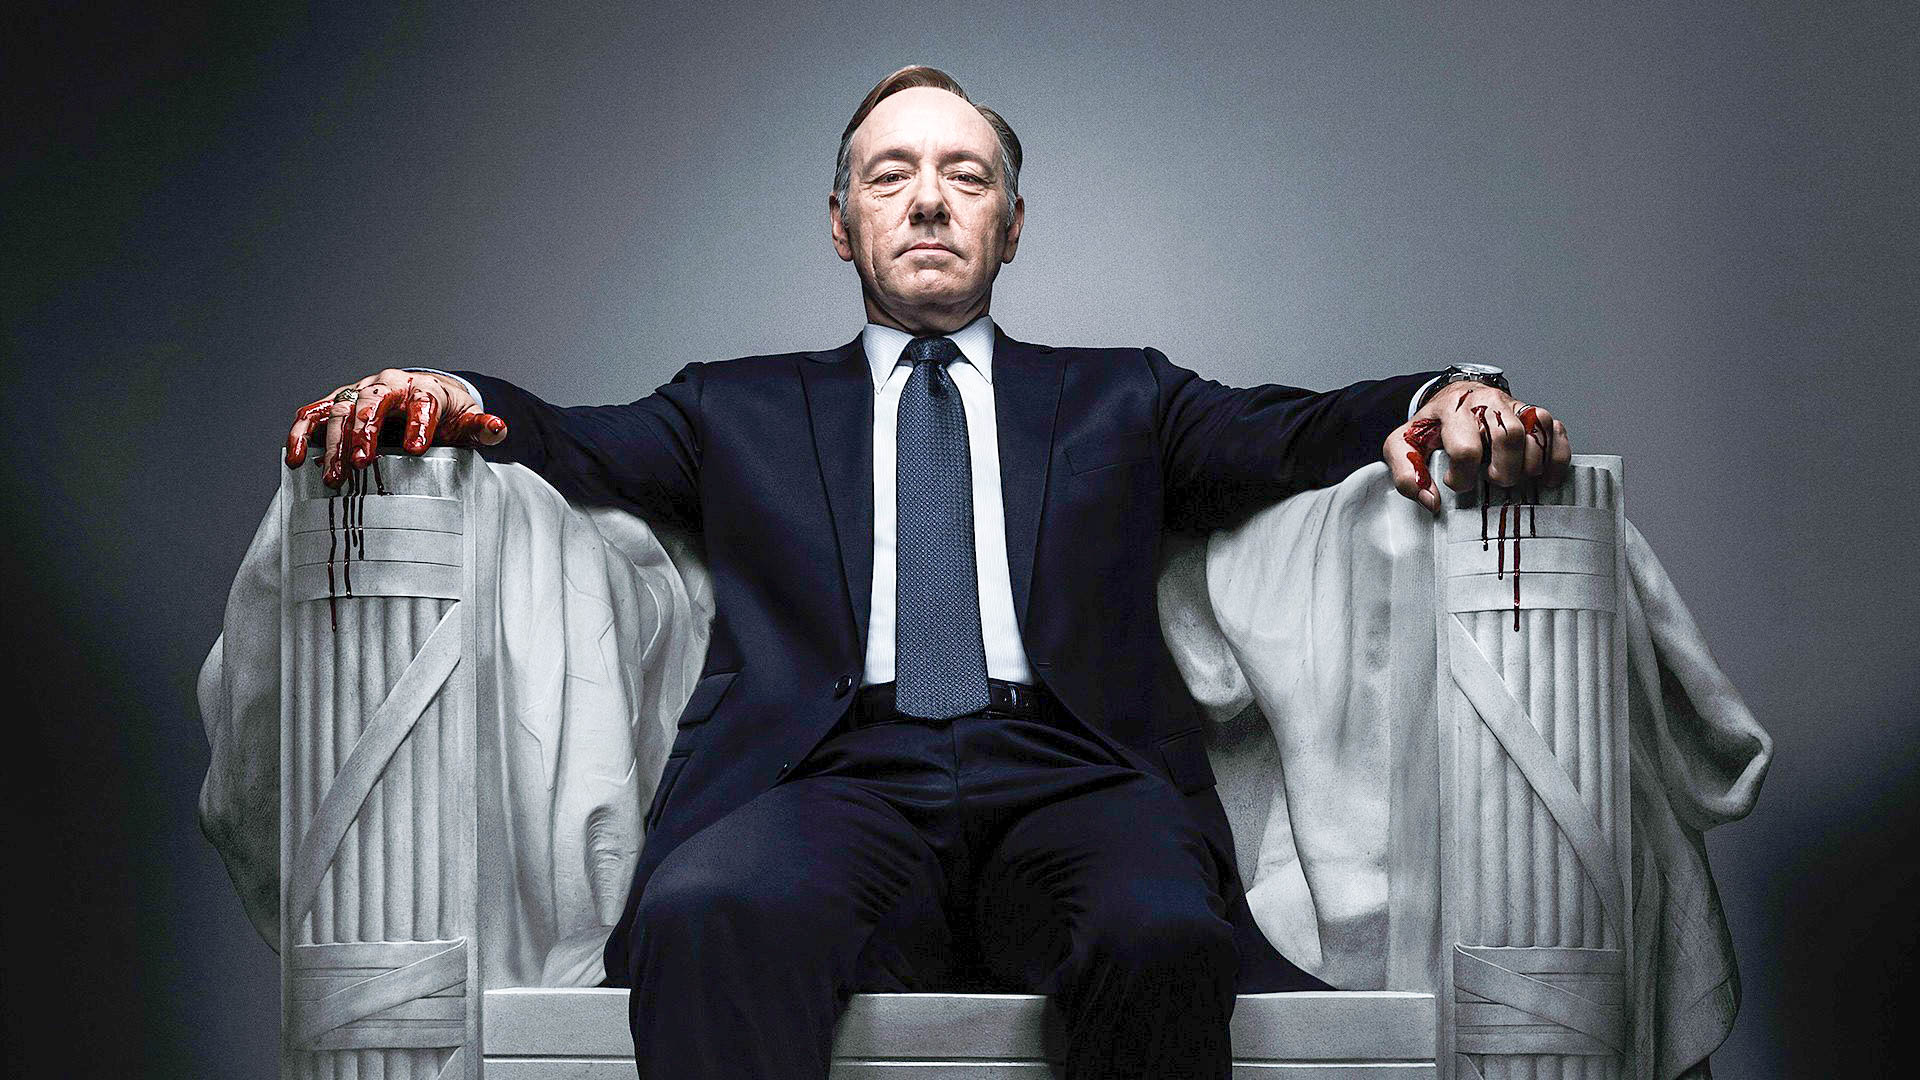 Samsung Galaxy Wallpaper Hd House Of Cards Amazing Hd Pictures Images Amp Wallpapers